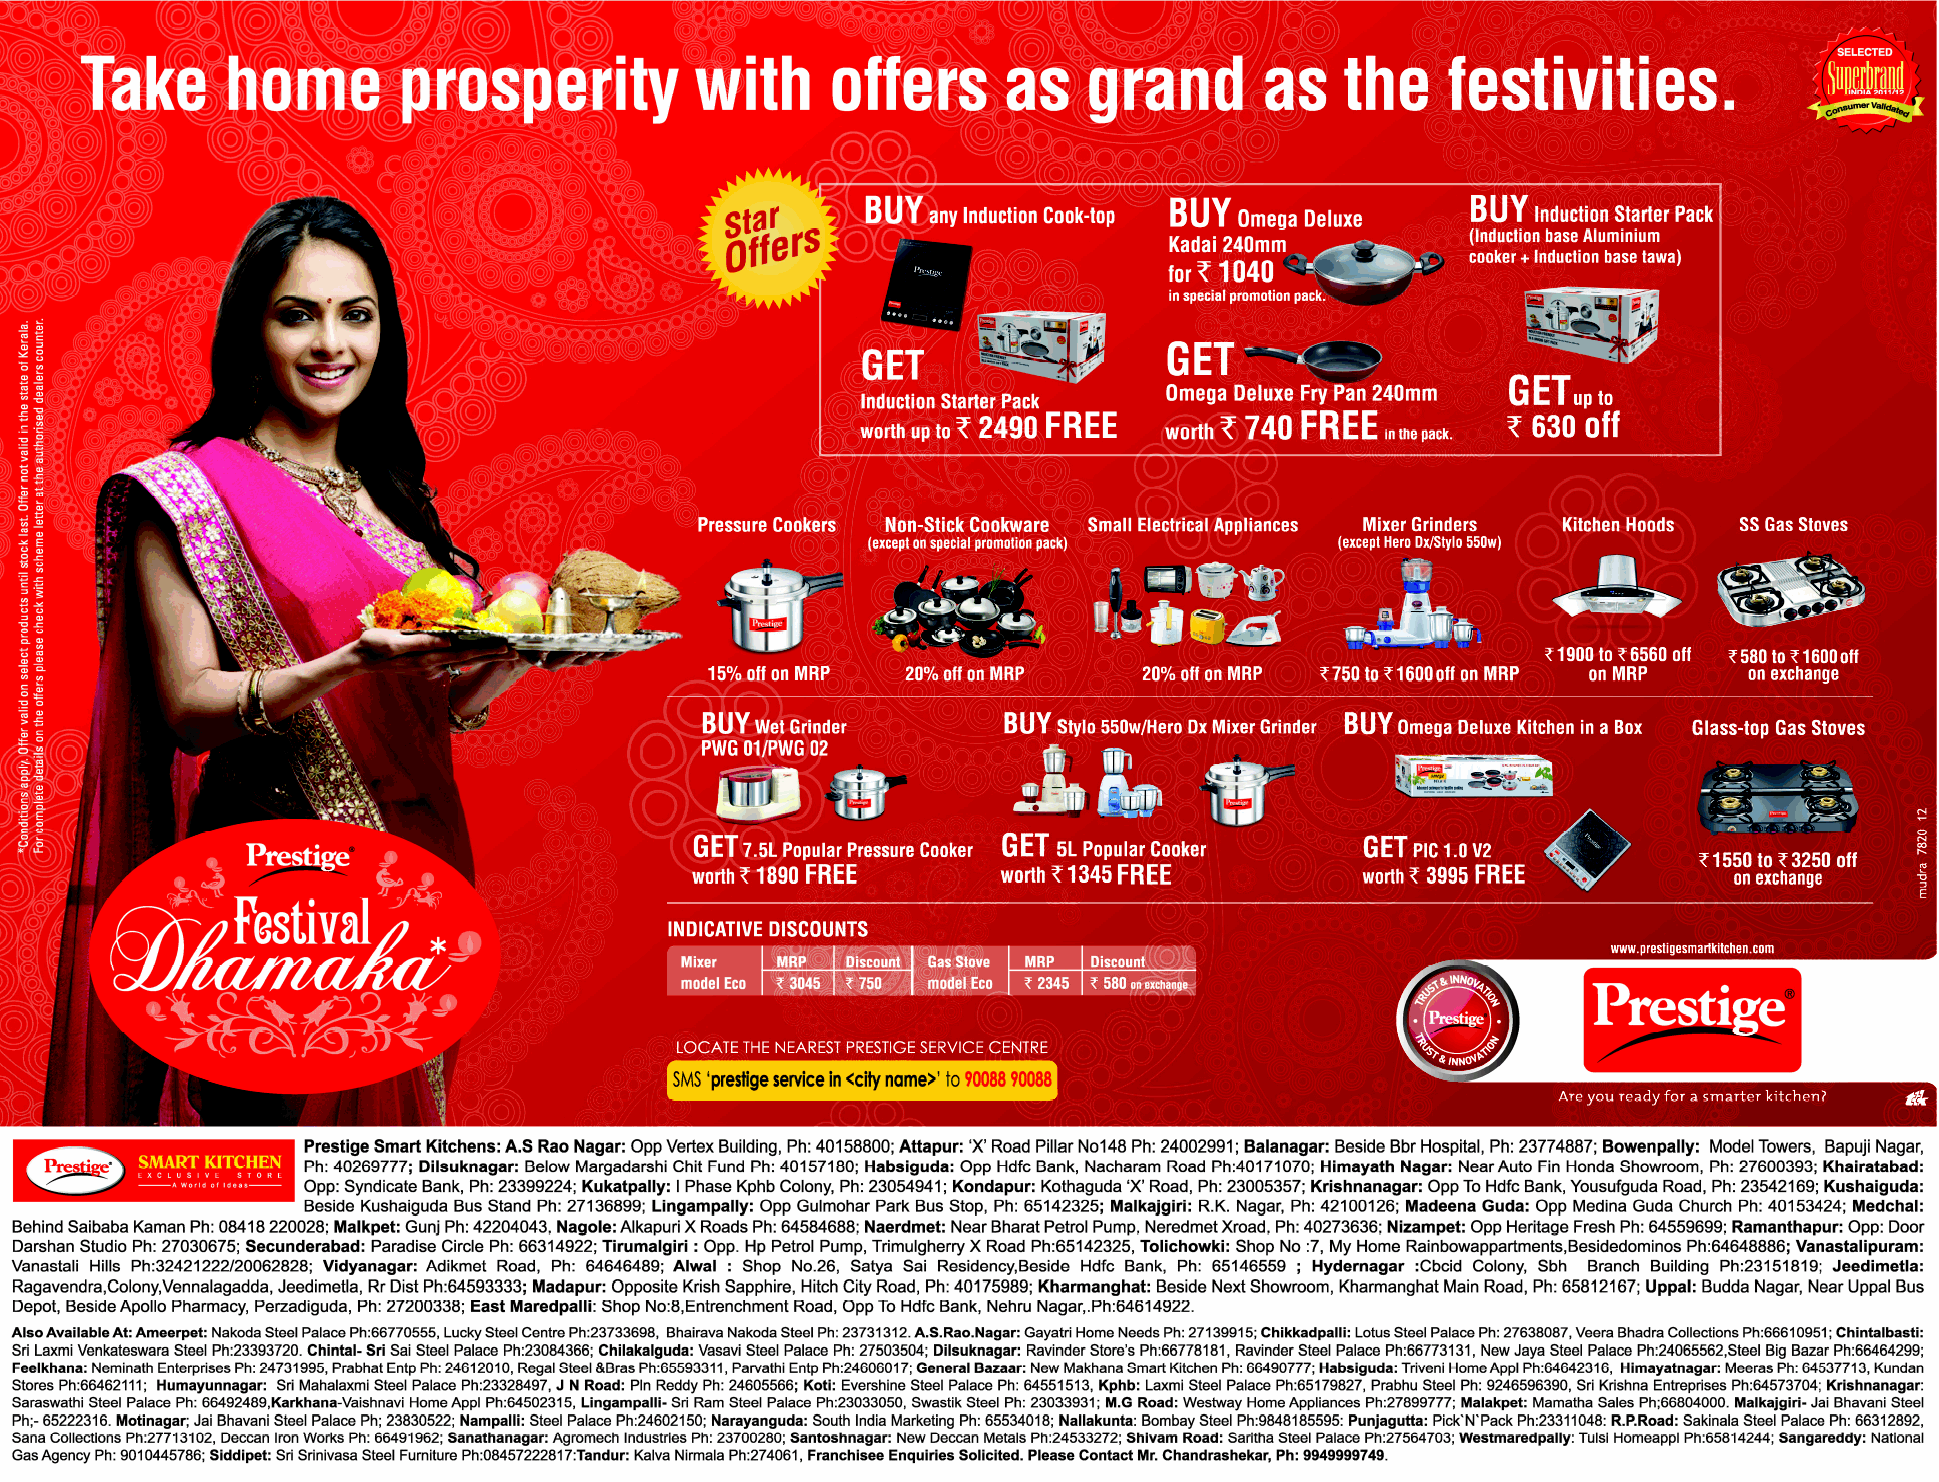 Prestige presents FESTIVAL DHAMAKA OFFERS on wide range of kitchen ...